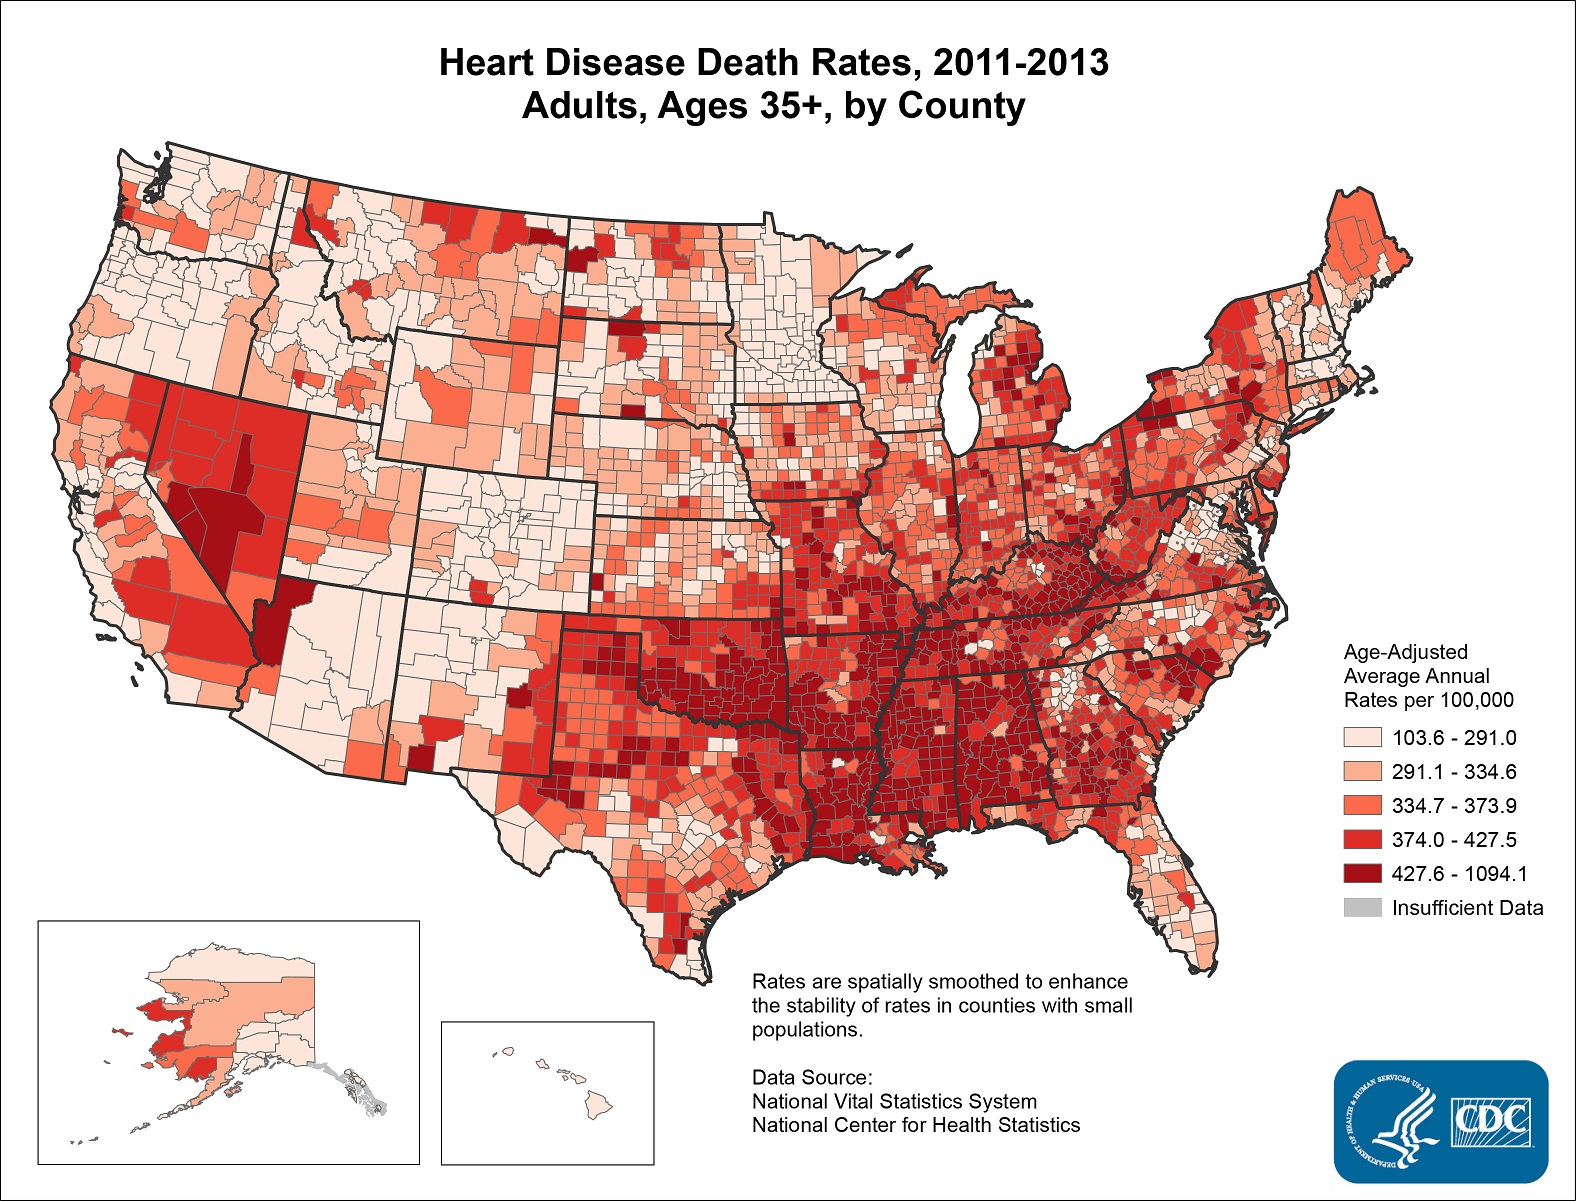 Prevalence Heart Disease Map Details Heart Disease Death Rates 2011 2013 Adults